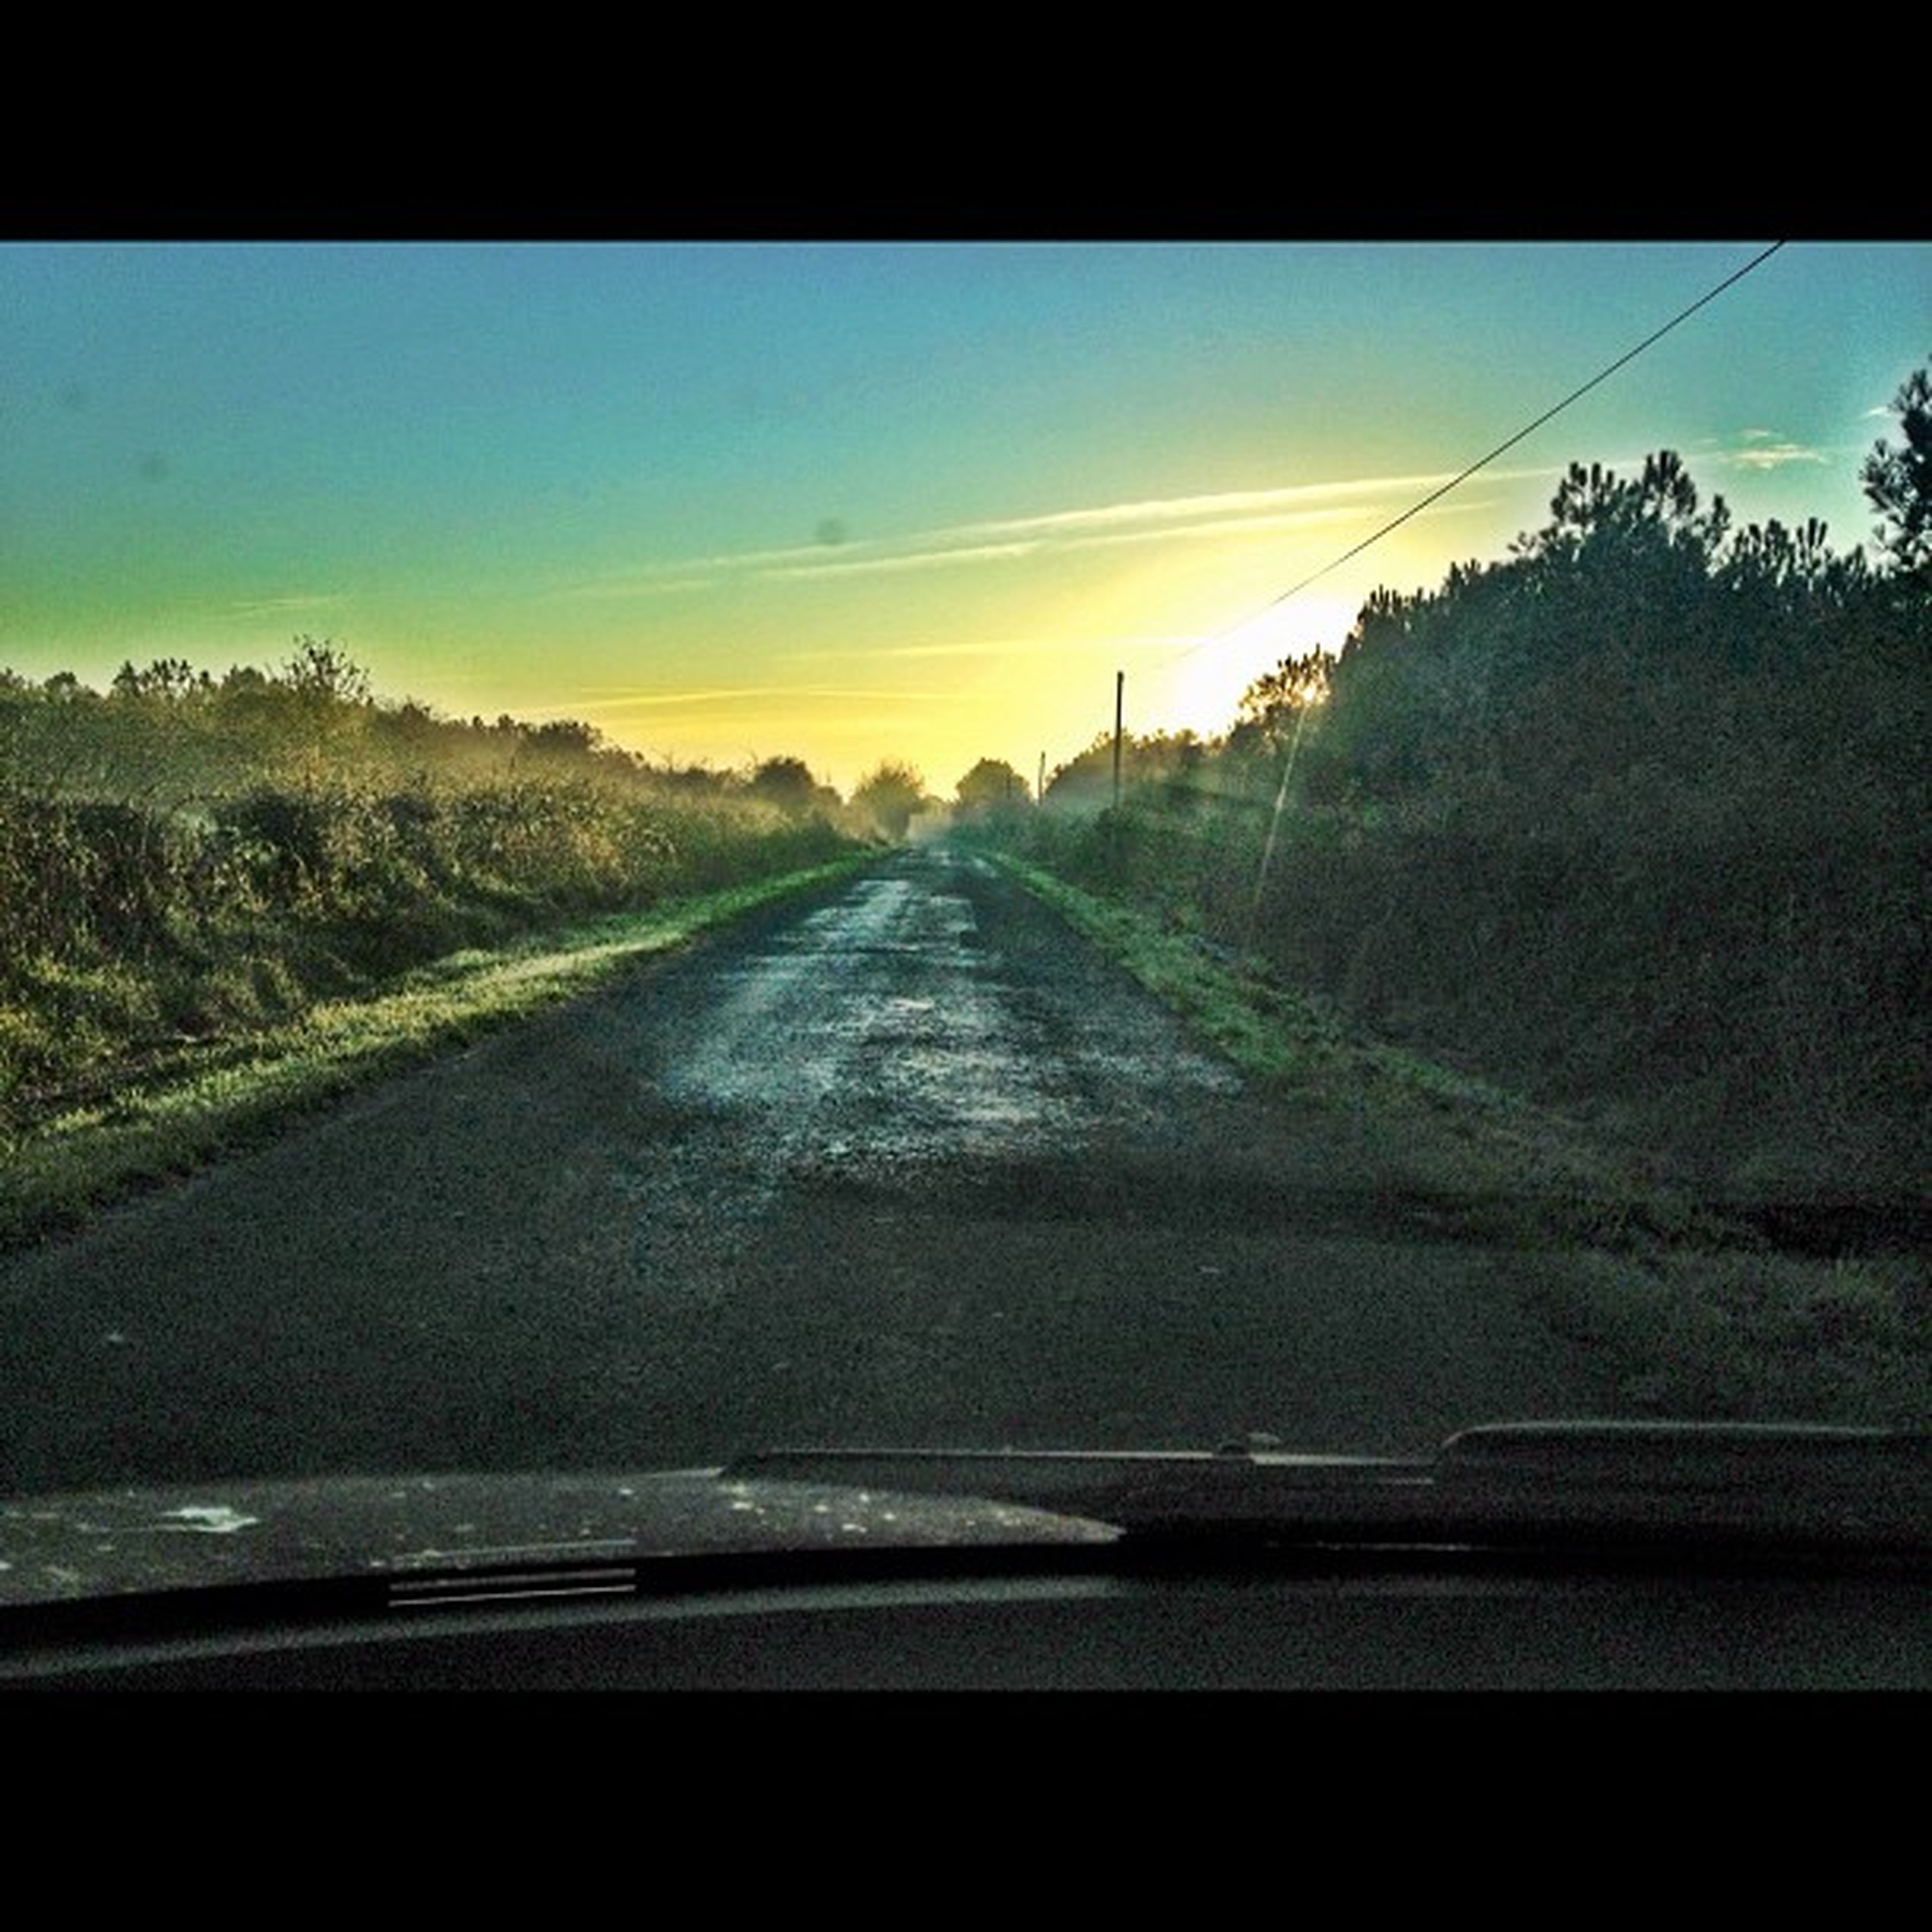 transportation, sky, sunset, road, tree, the way forward, diminishing perspective, car, tranquil scene, landscape, vehicle interior, mode of transport, nature, land vehicle, water, vanishing point, cloud - sky, tranquility, scenics, travel